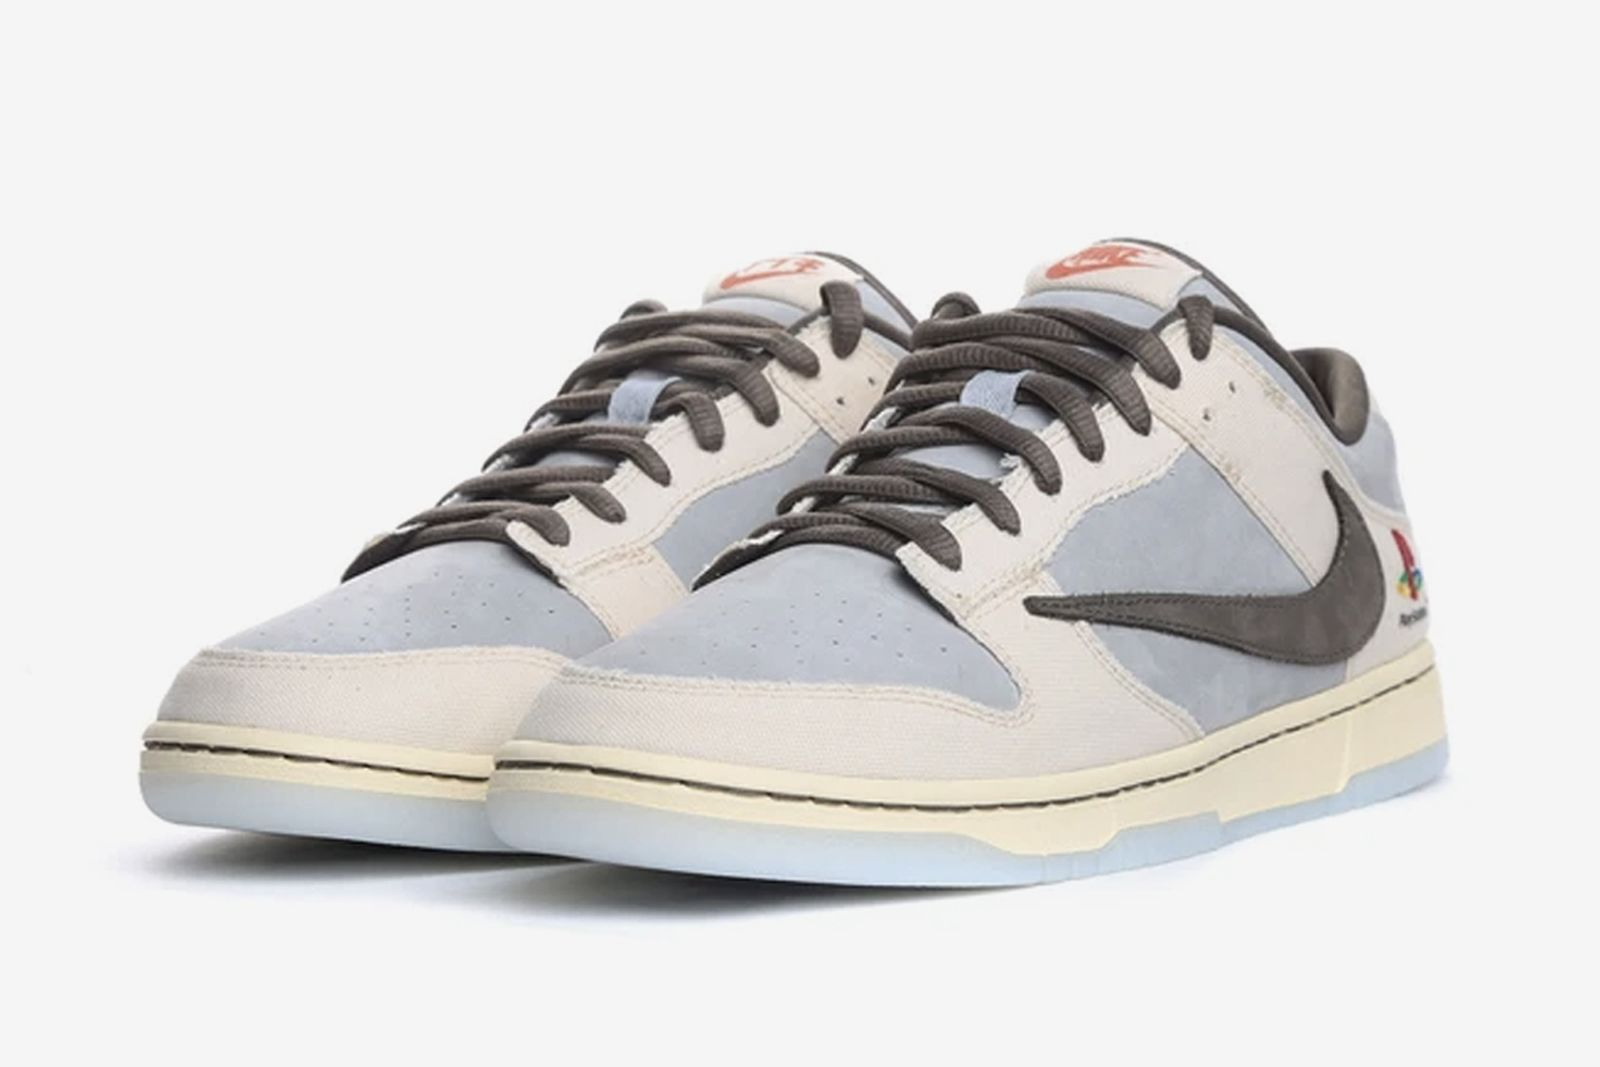 travis-scott-playstation-nike-dunk-low-release-date-price-01